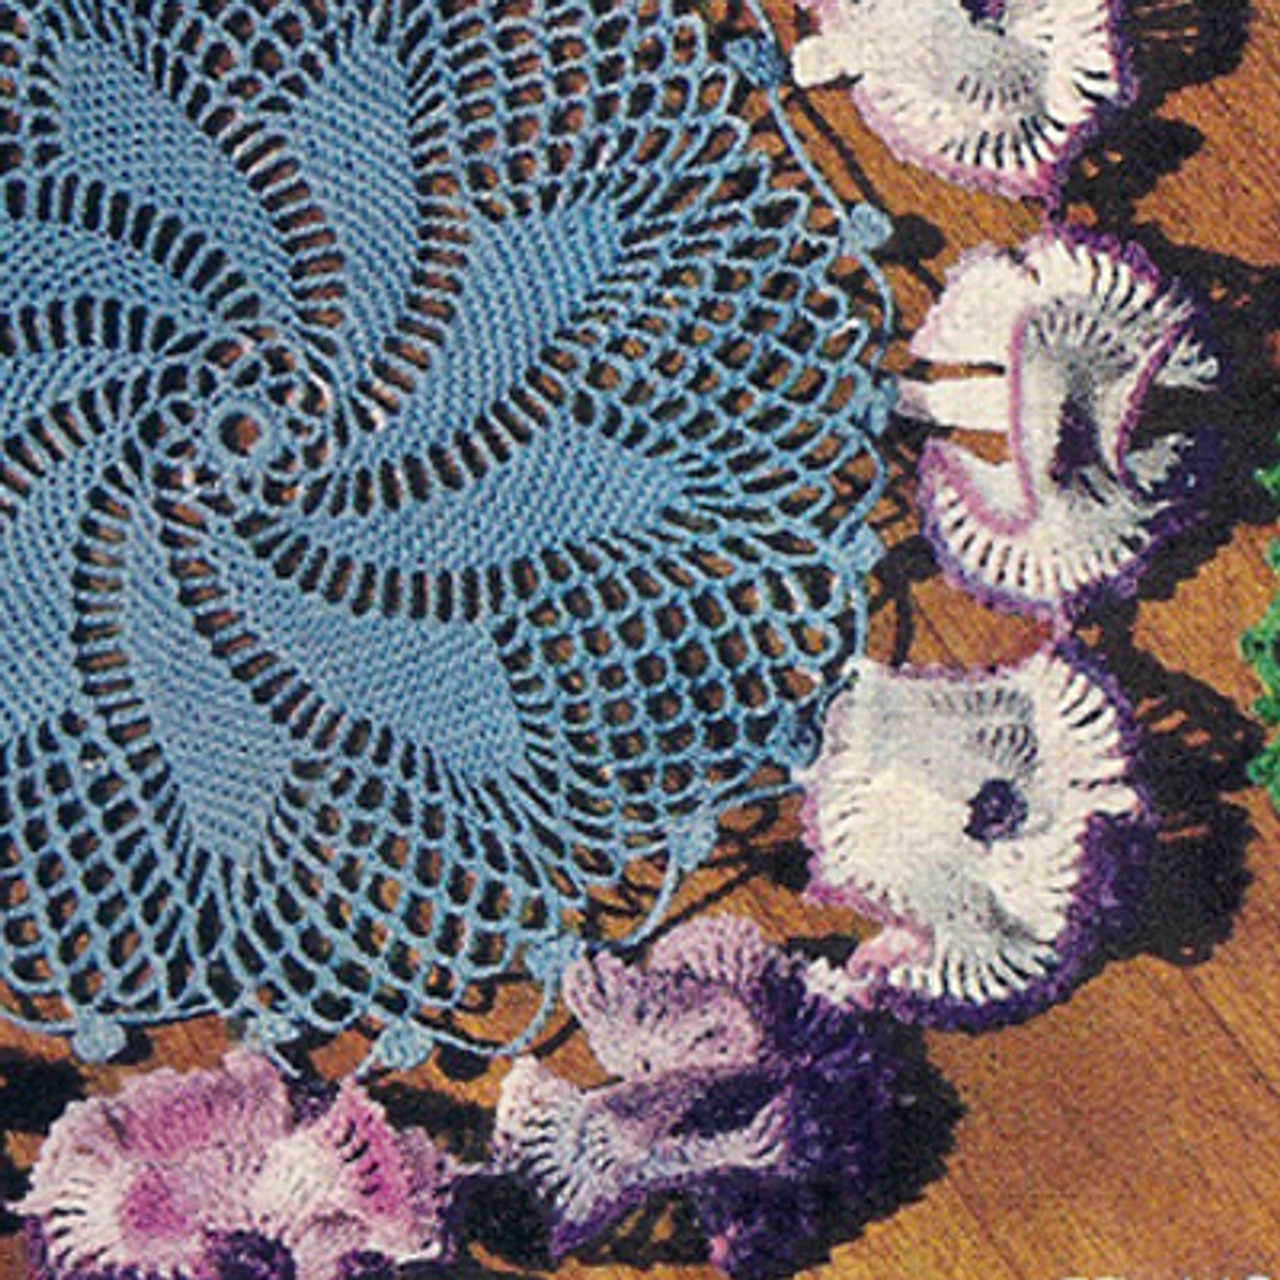 Crocheted Petunia Doily pattern